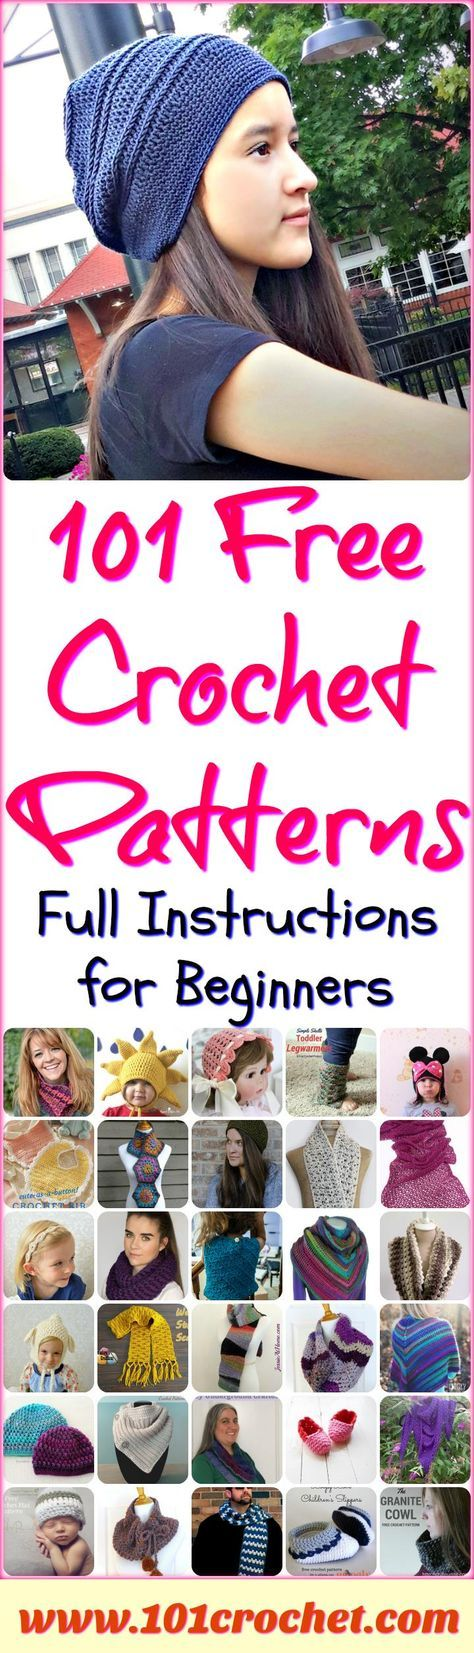 101 Free Crochet Patterns – Full Instructions for Beginners | 101 Crochet